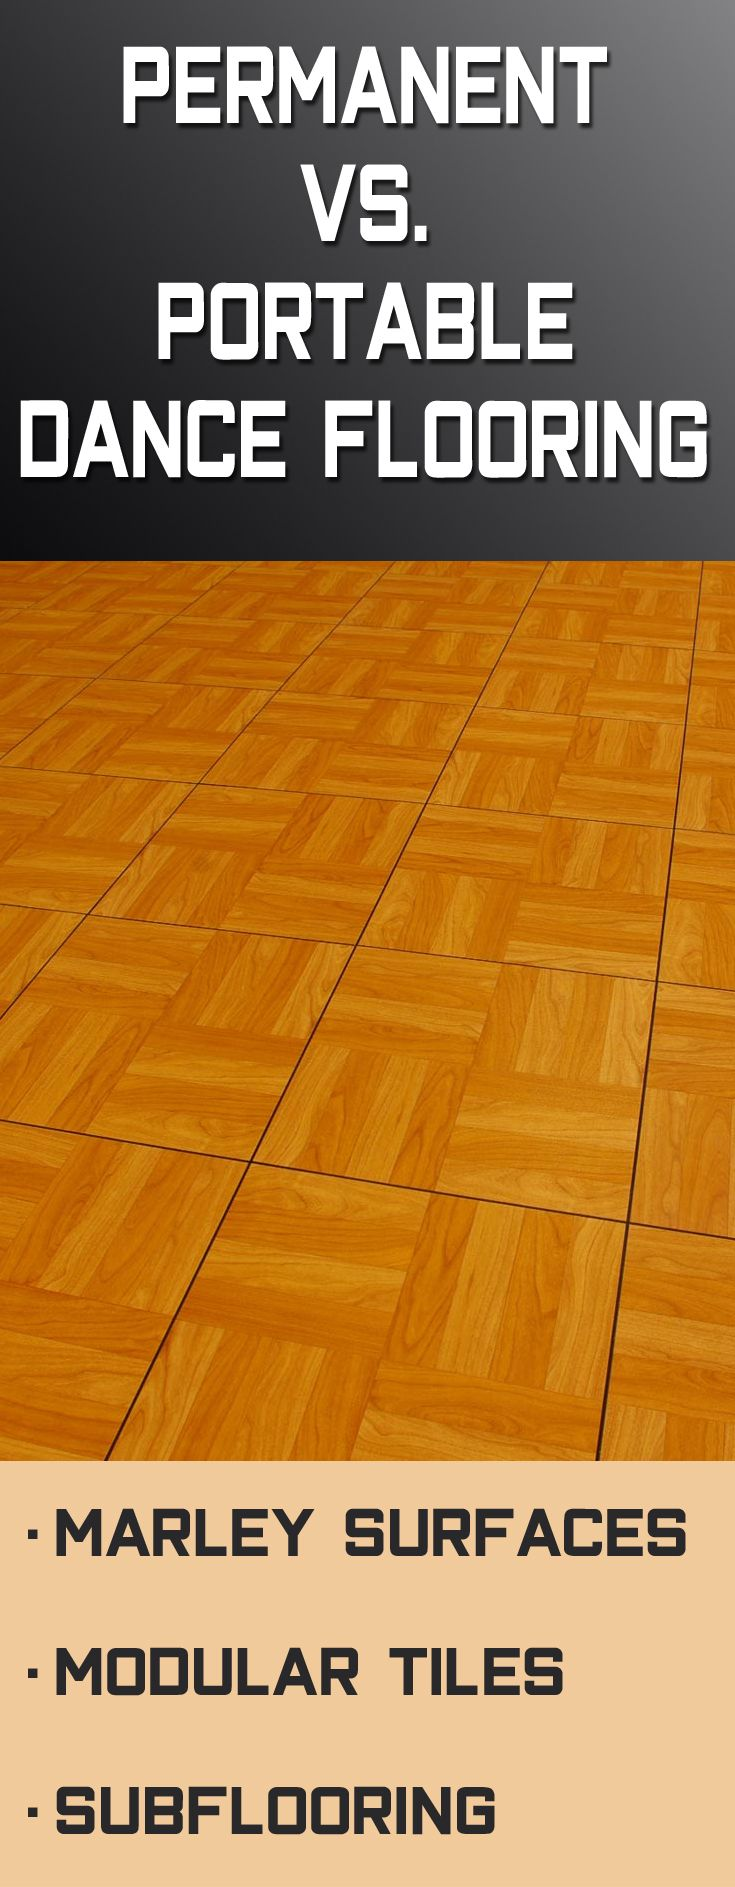 70 best dance flooring images on pinterest if you arent sure if you should buy a permanent or portable dance floor dailygadgetfo Gallery